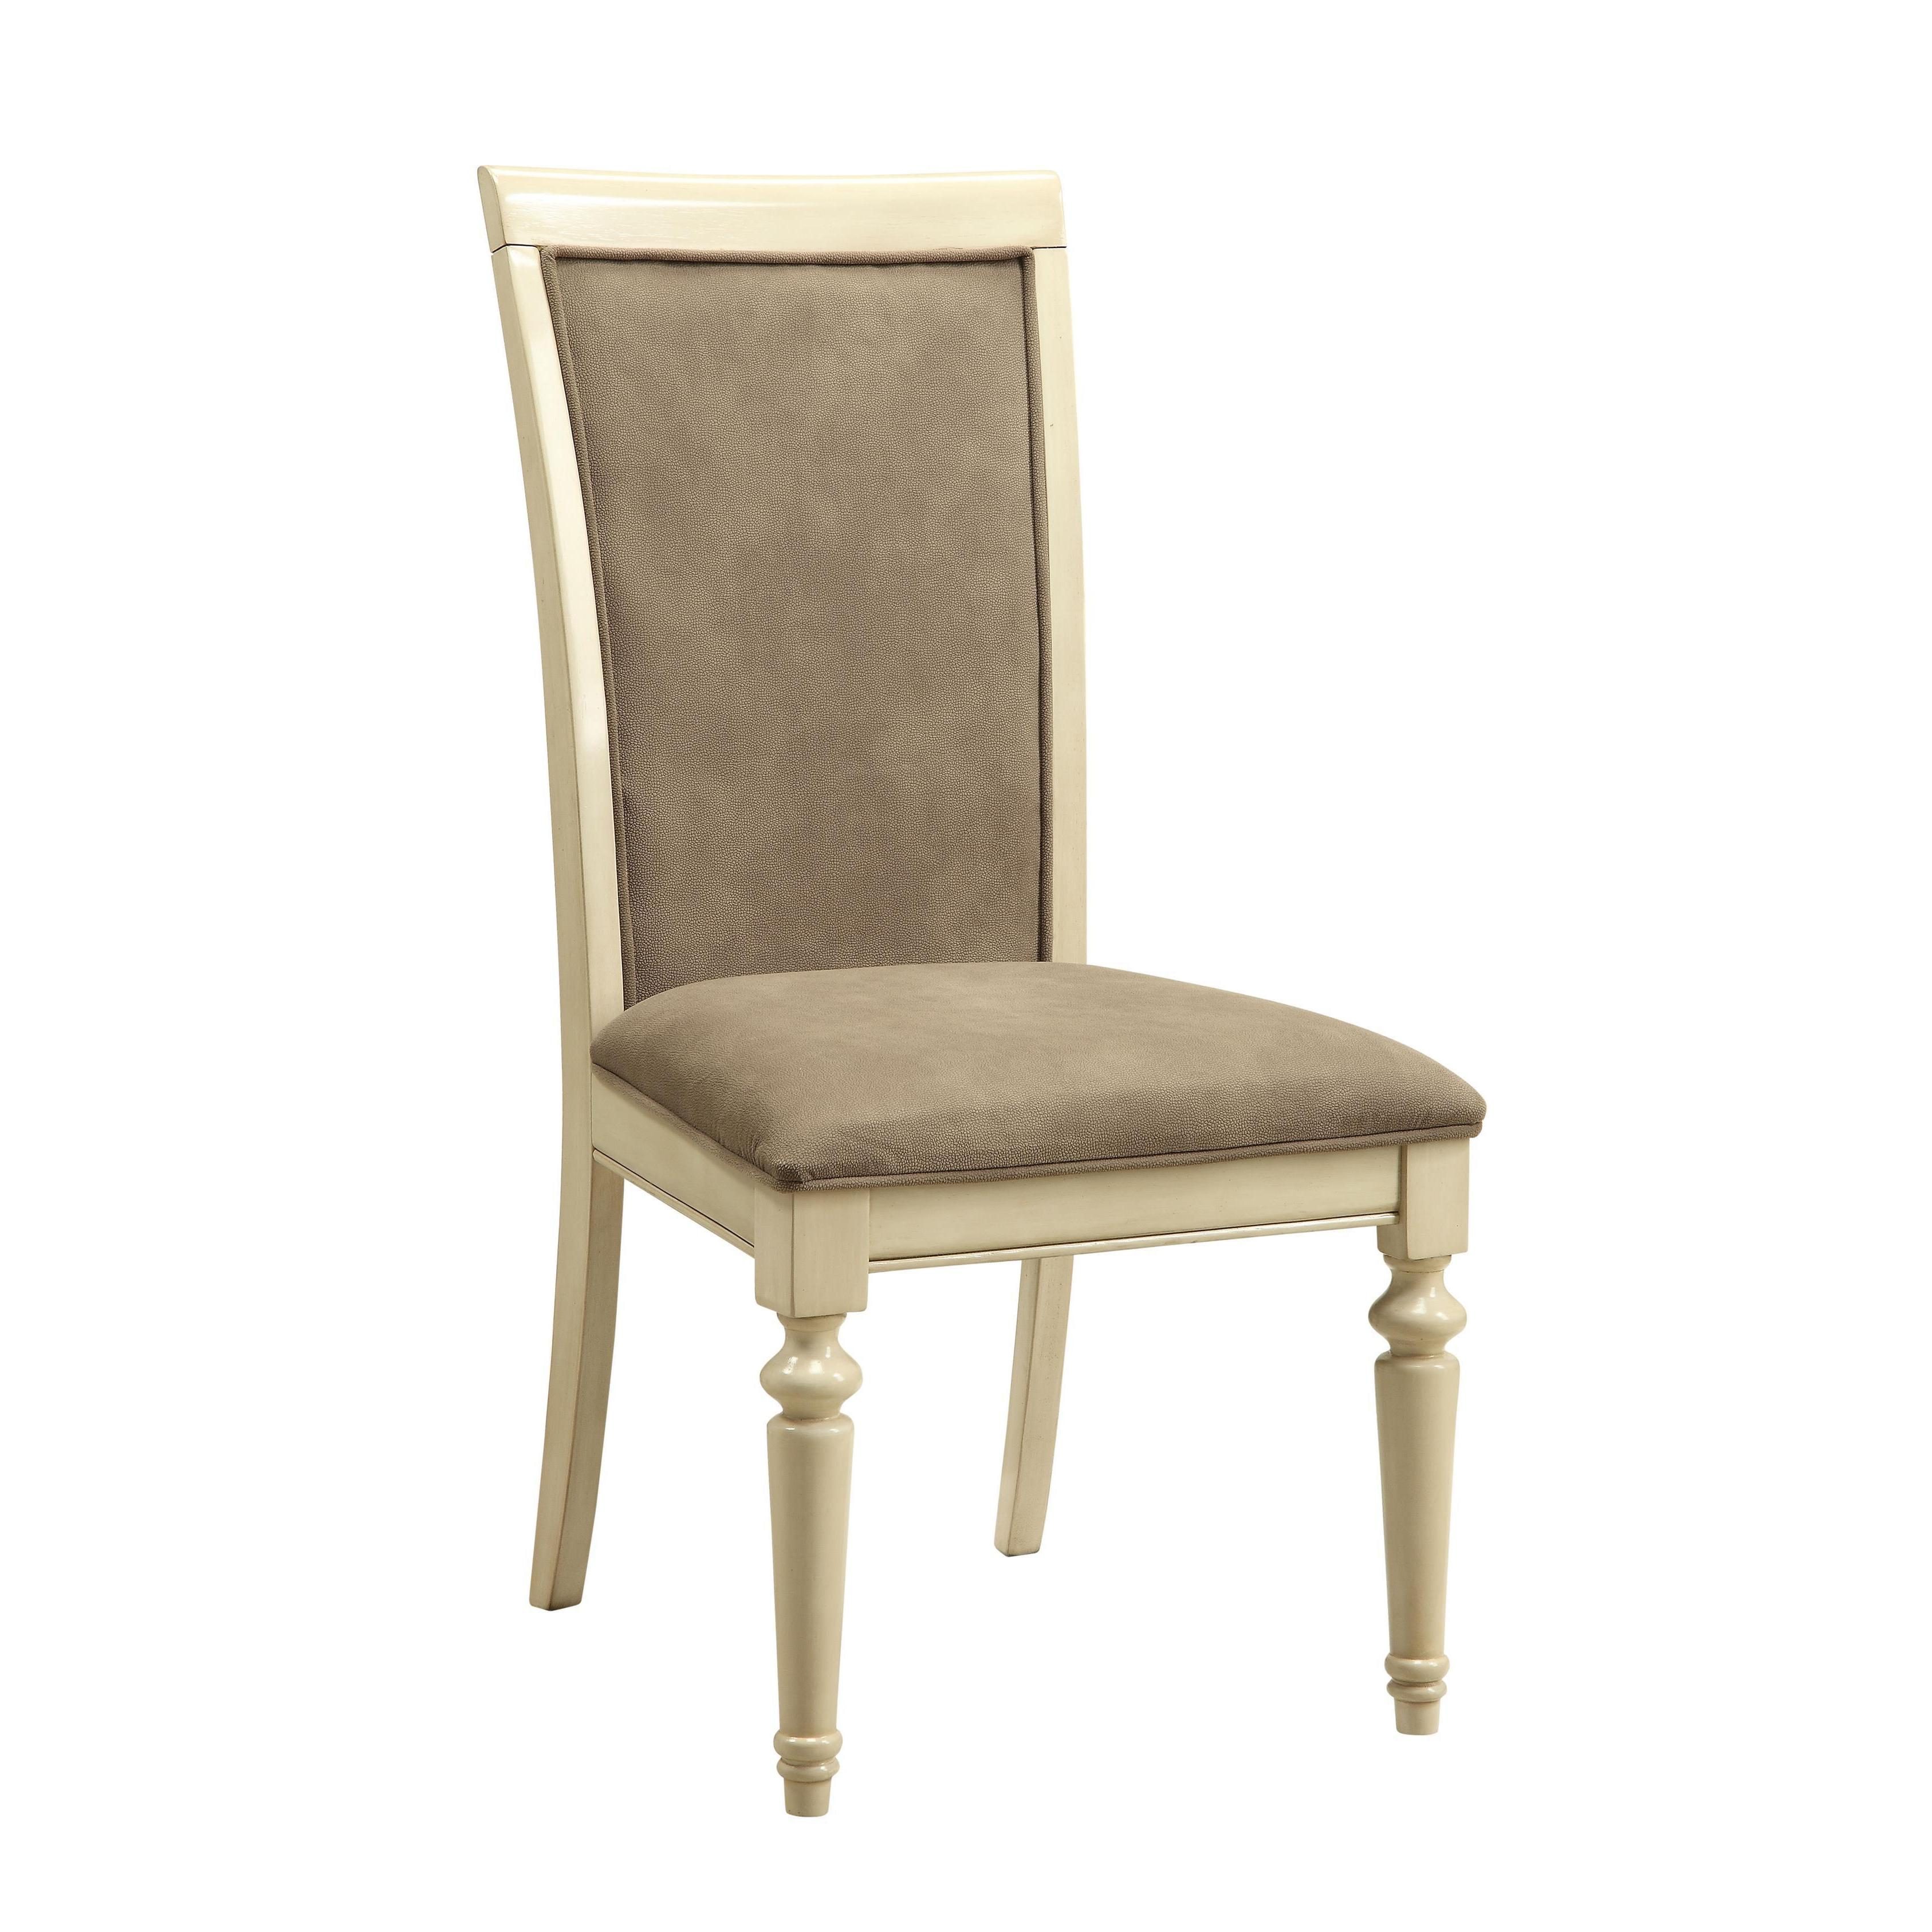 ACME Furniture Ryder Marble and Antique White Dining Chai...